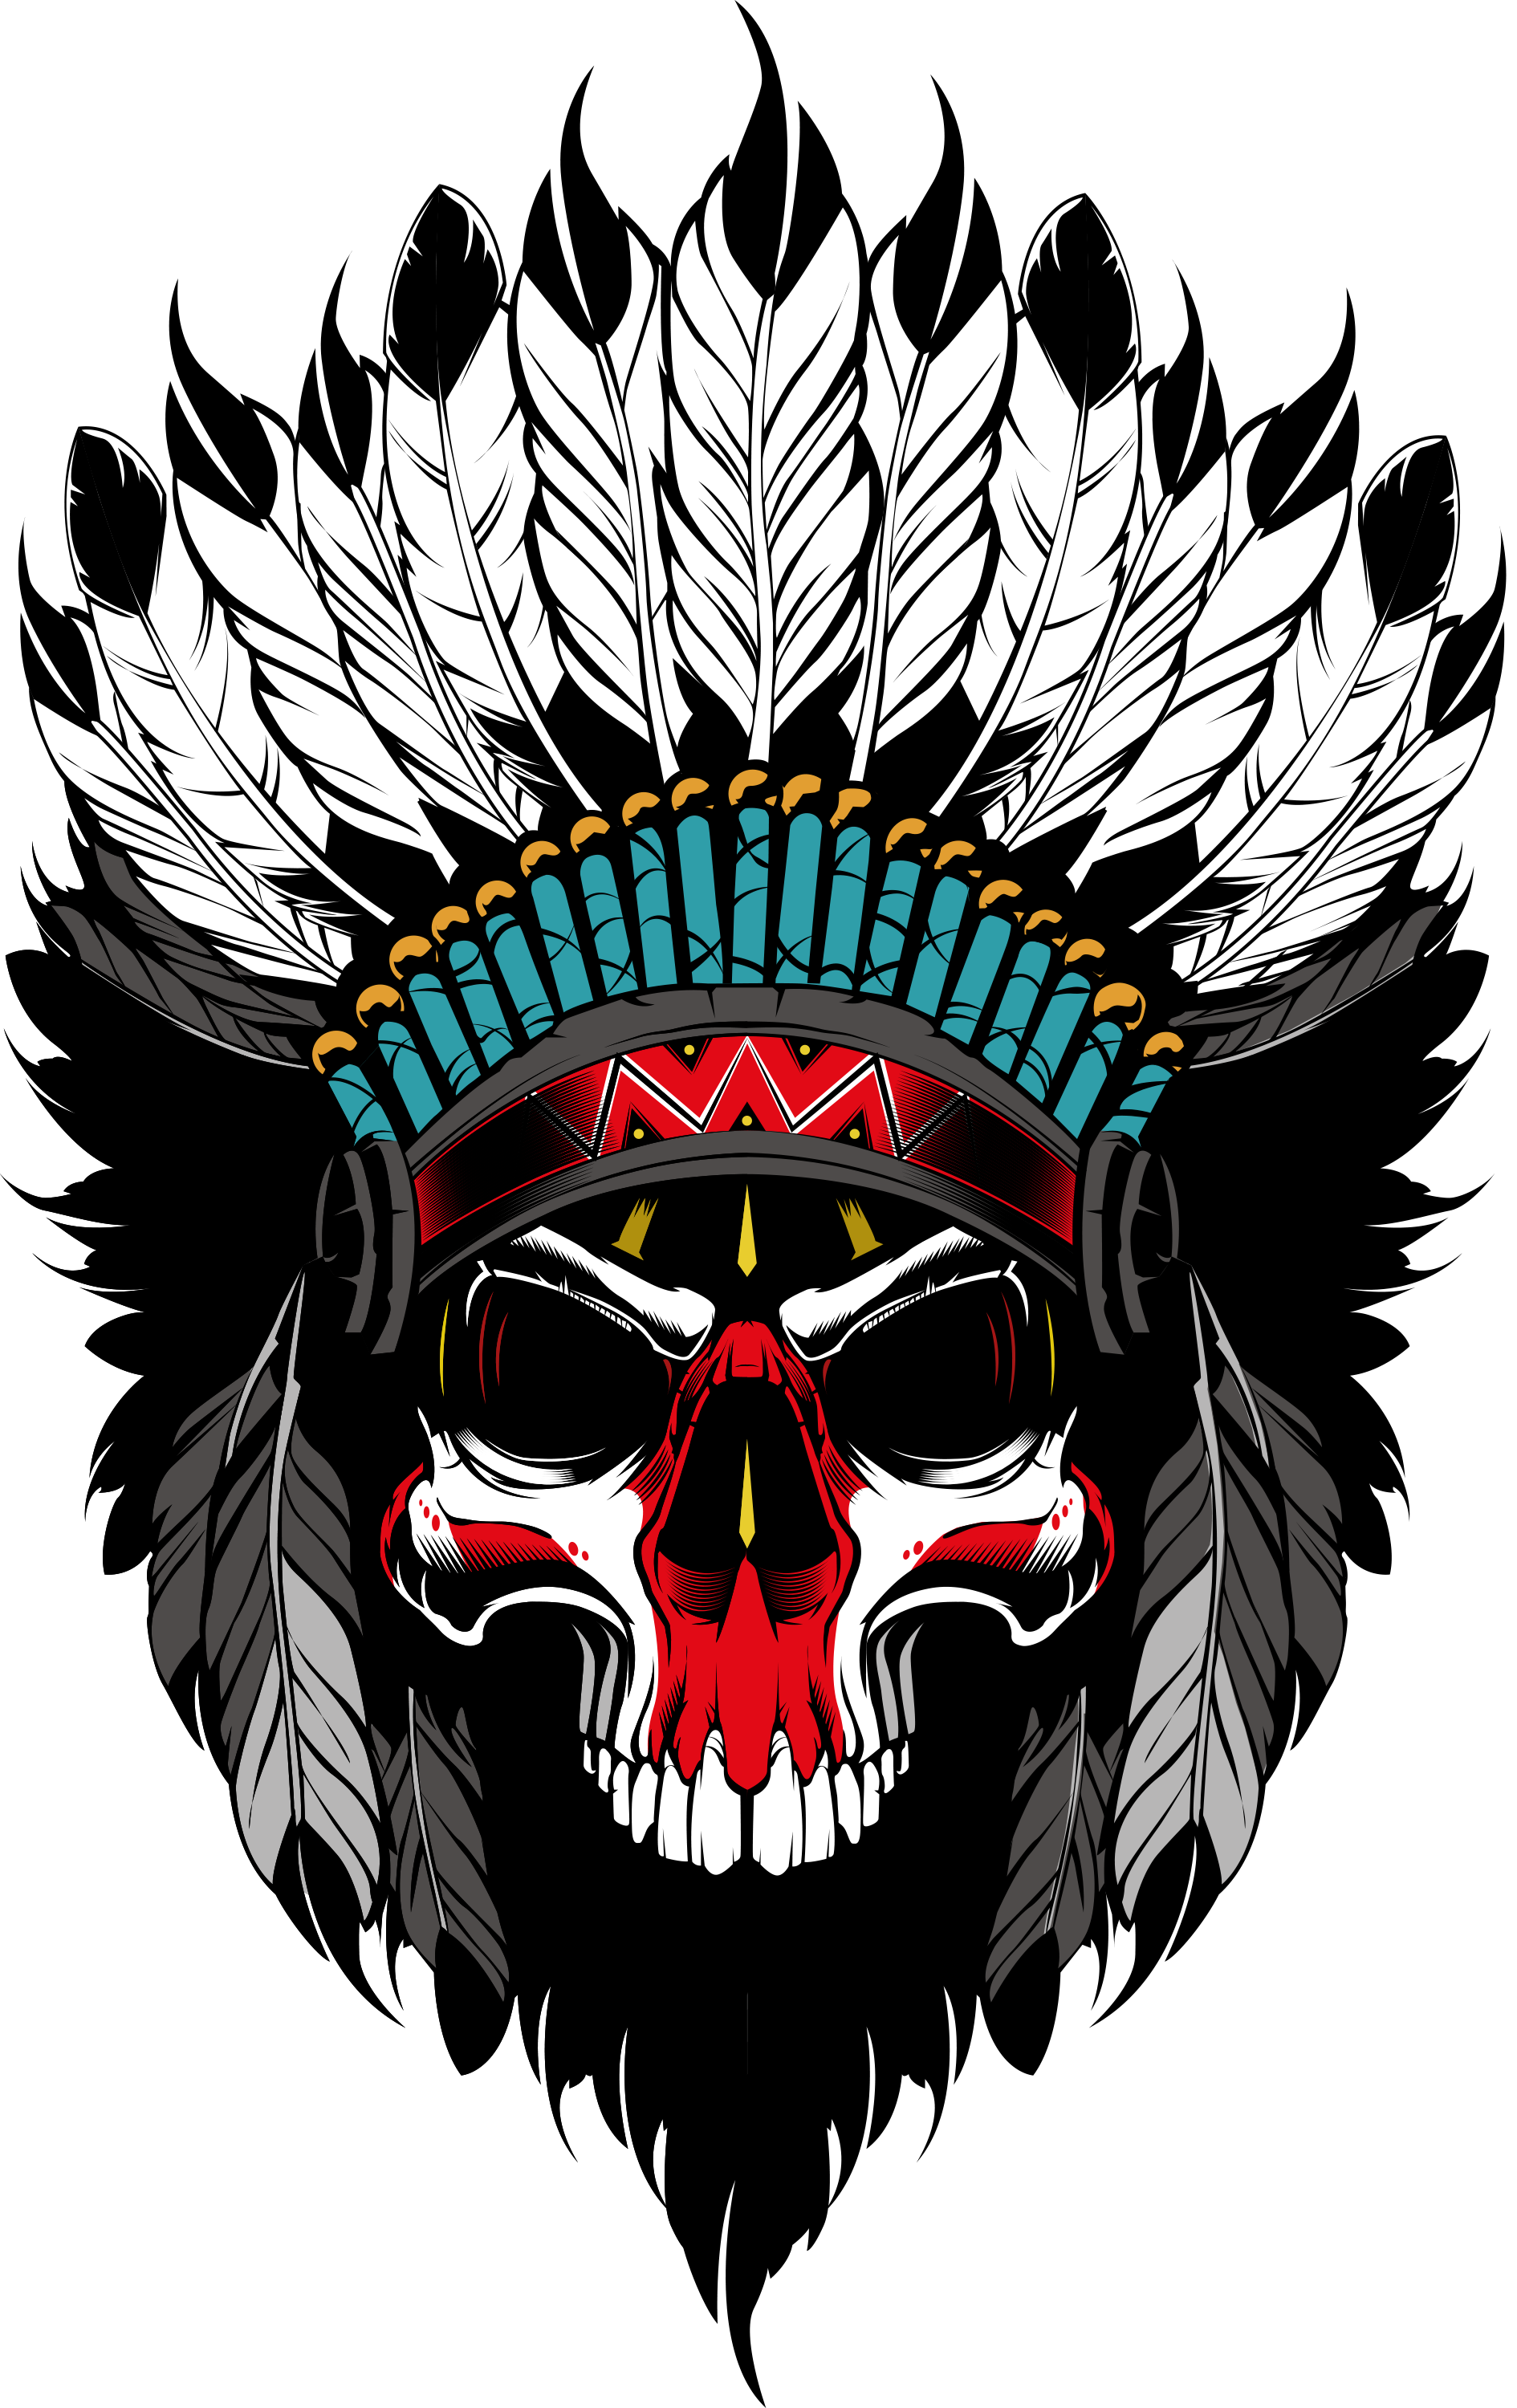 Apache drawing tattoo. Indian s skull dessin